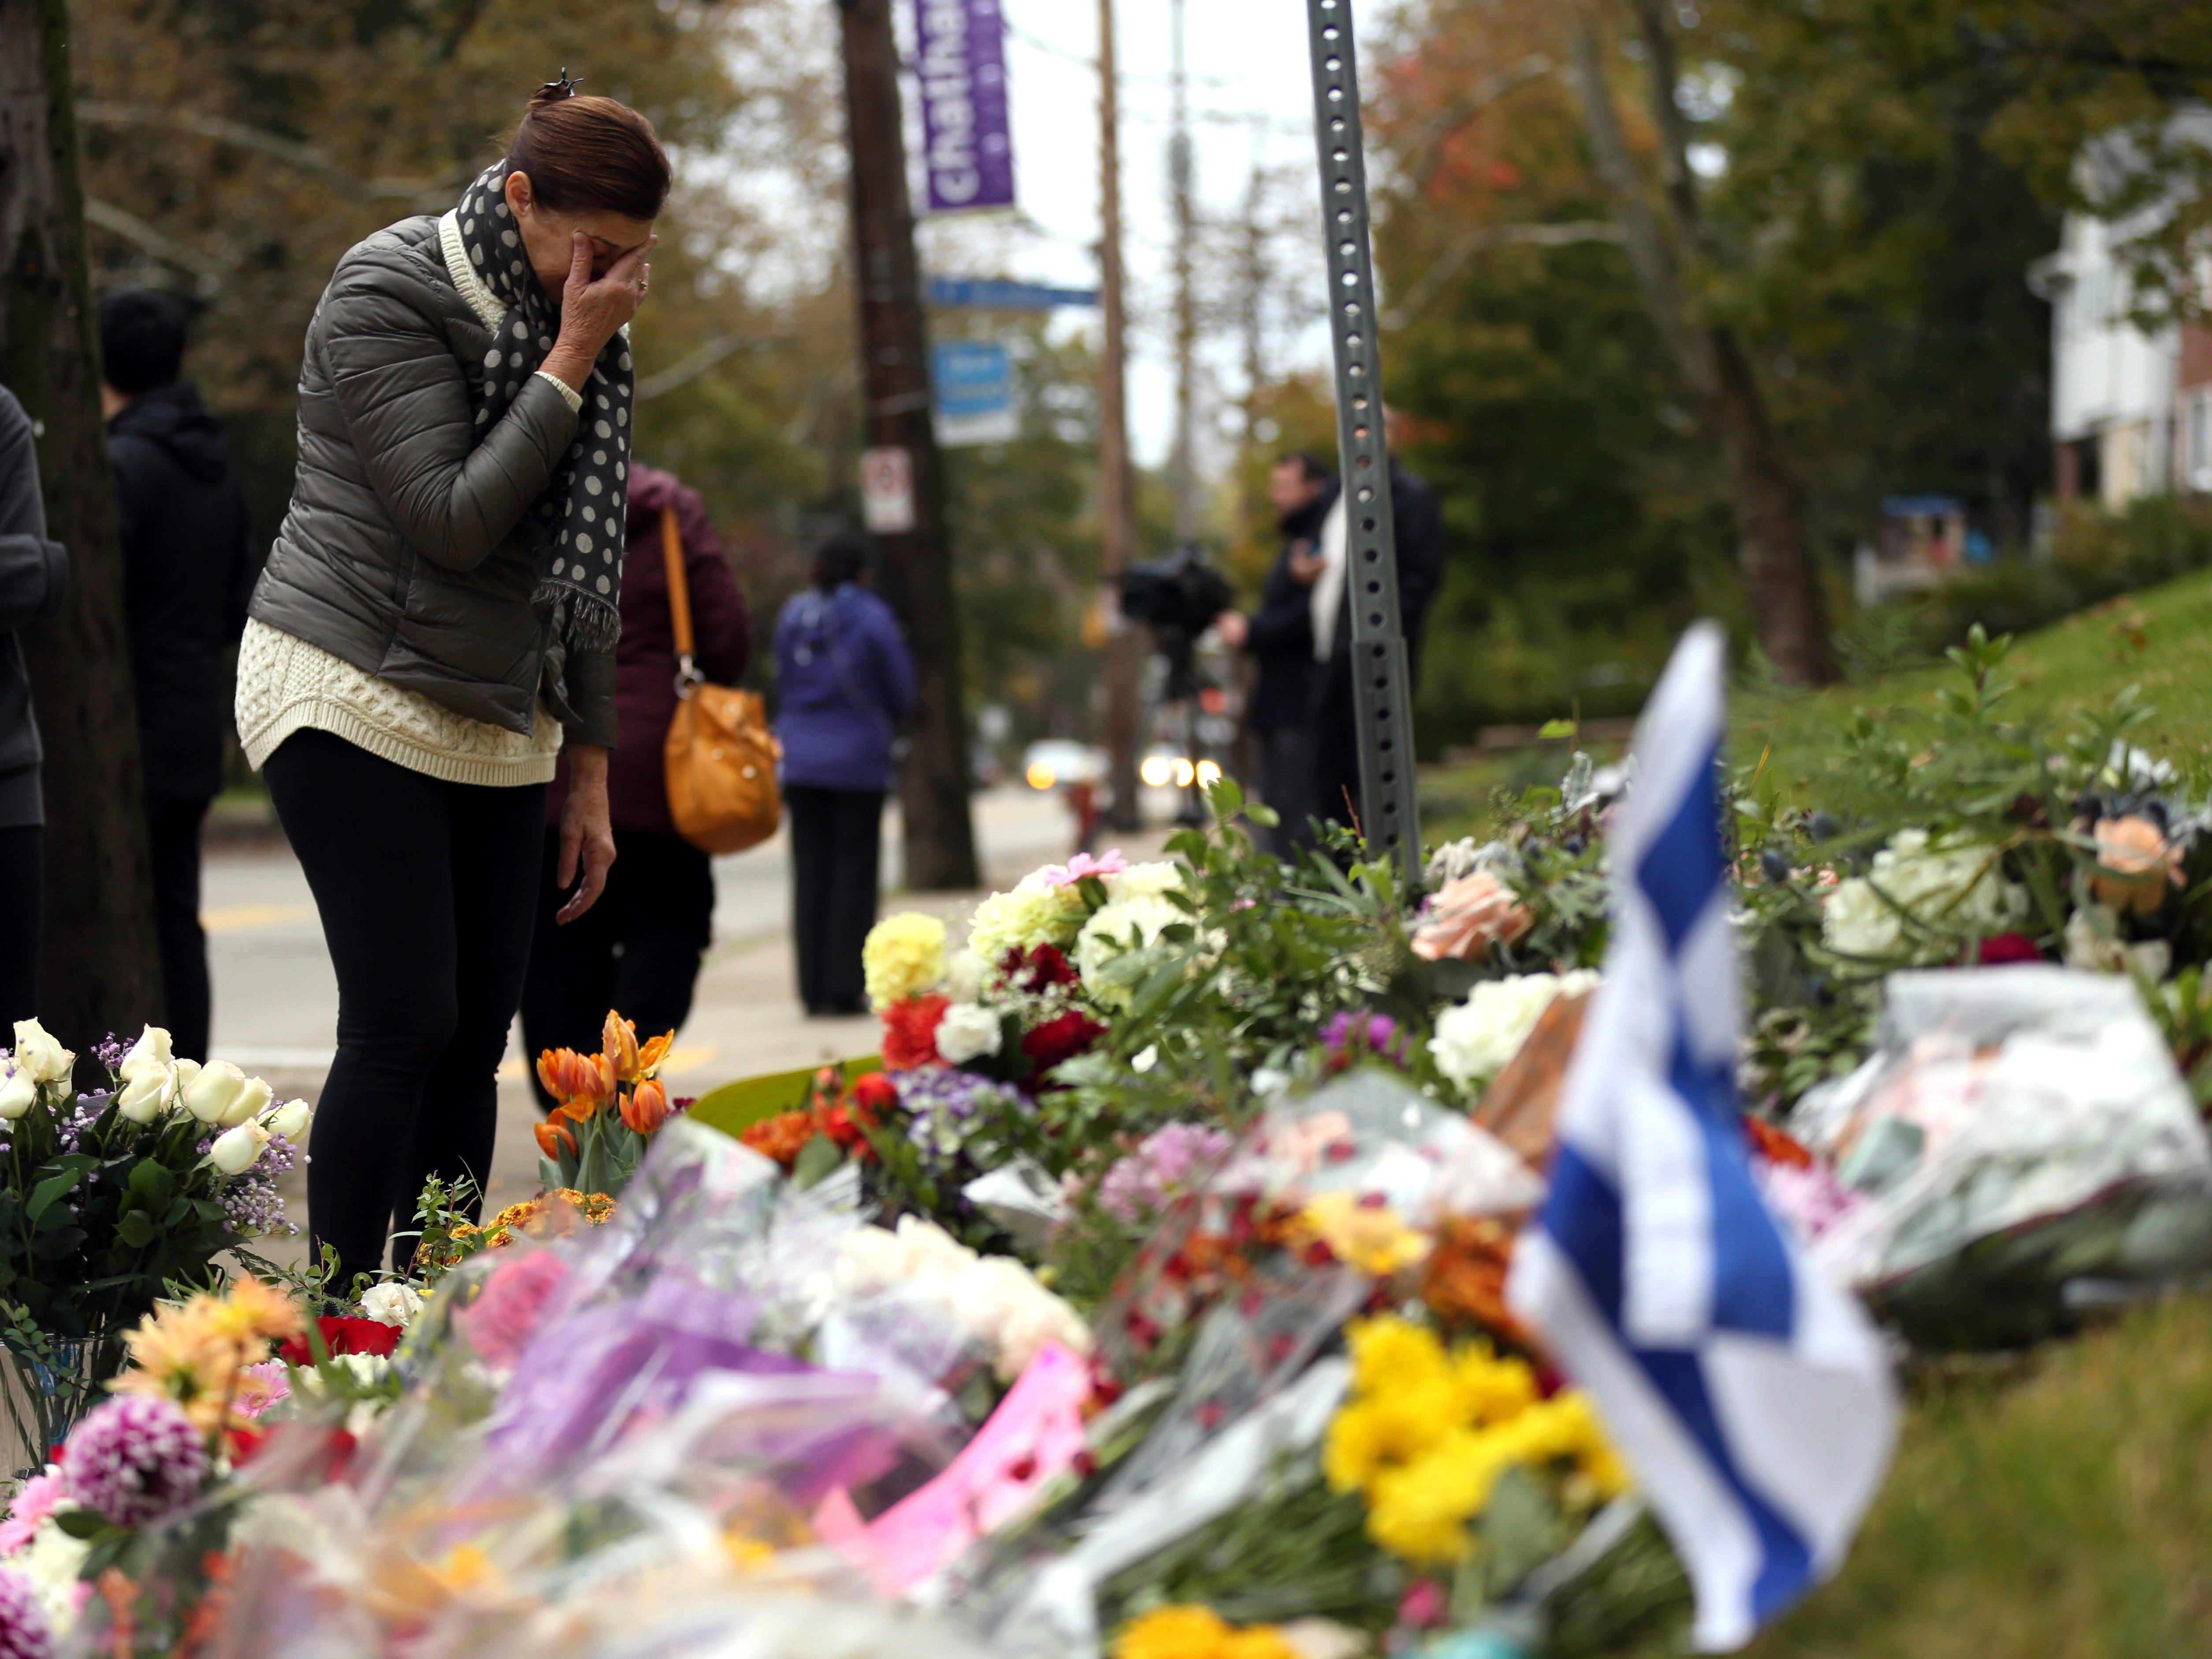 A person mourns at a makeshift memorial at the Tree of Life Congregation synagogue in Pittsburgh.